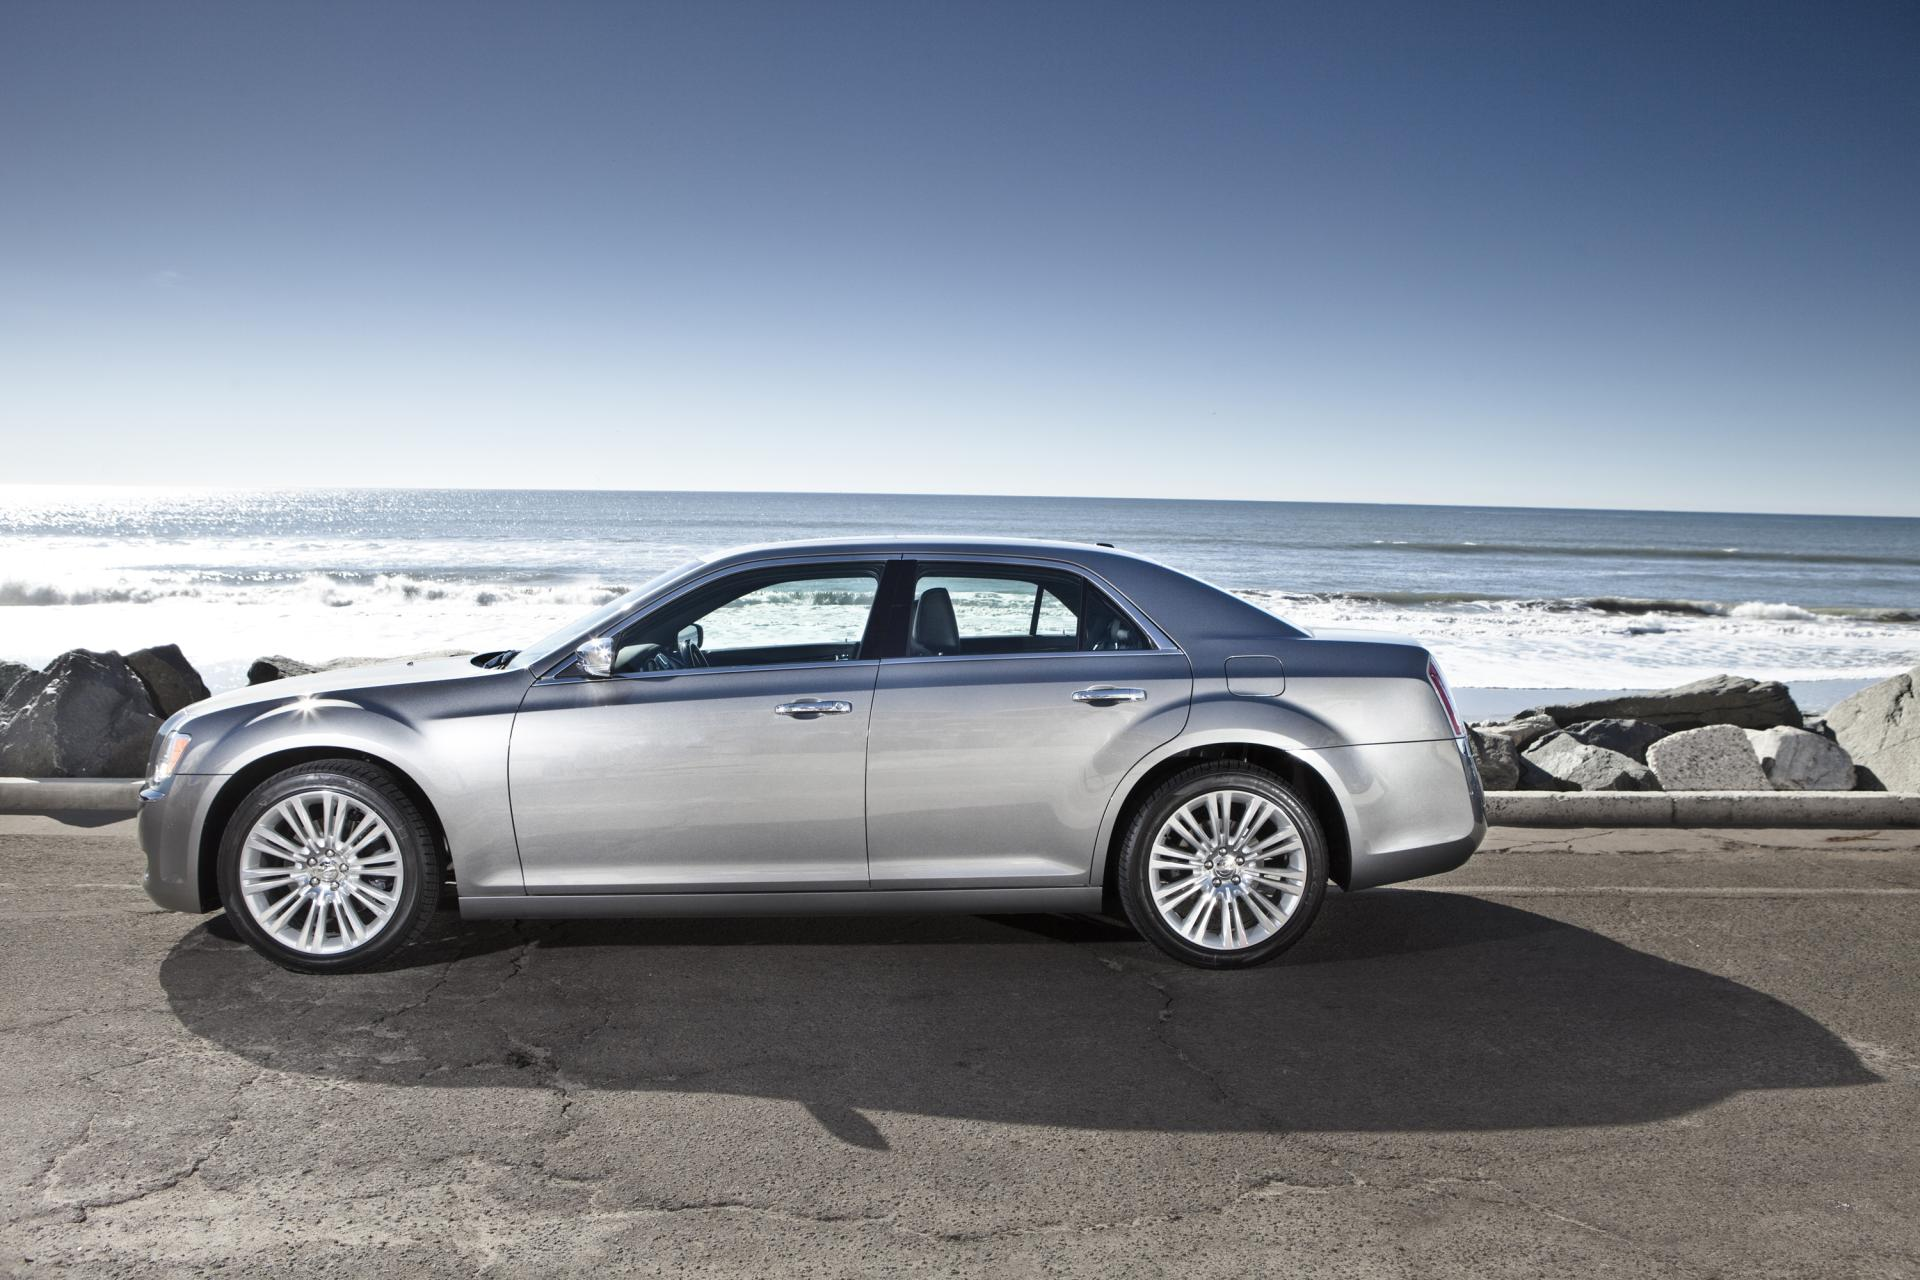 review carreview reviews news com chrysler at car and